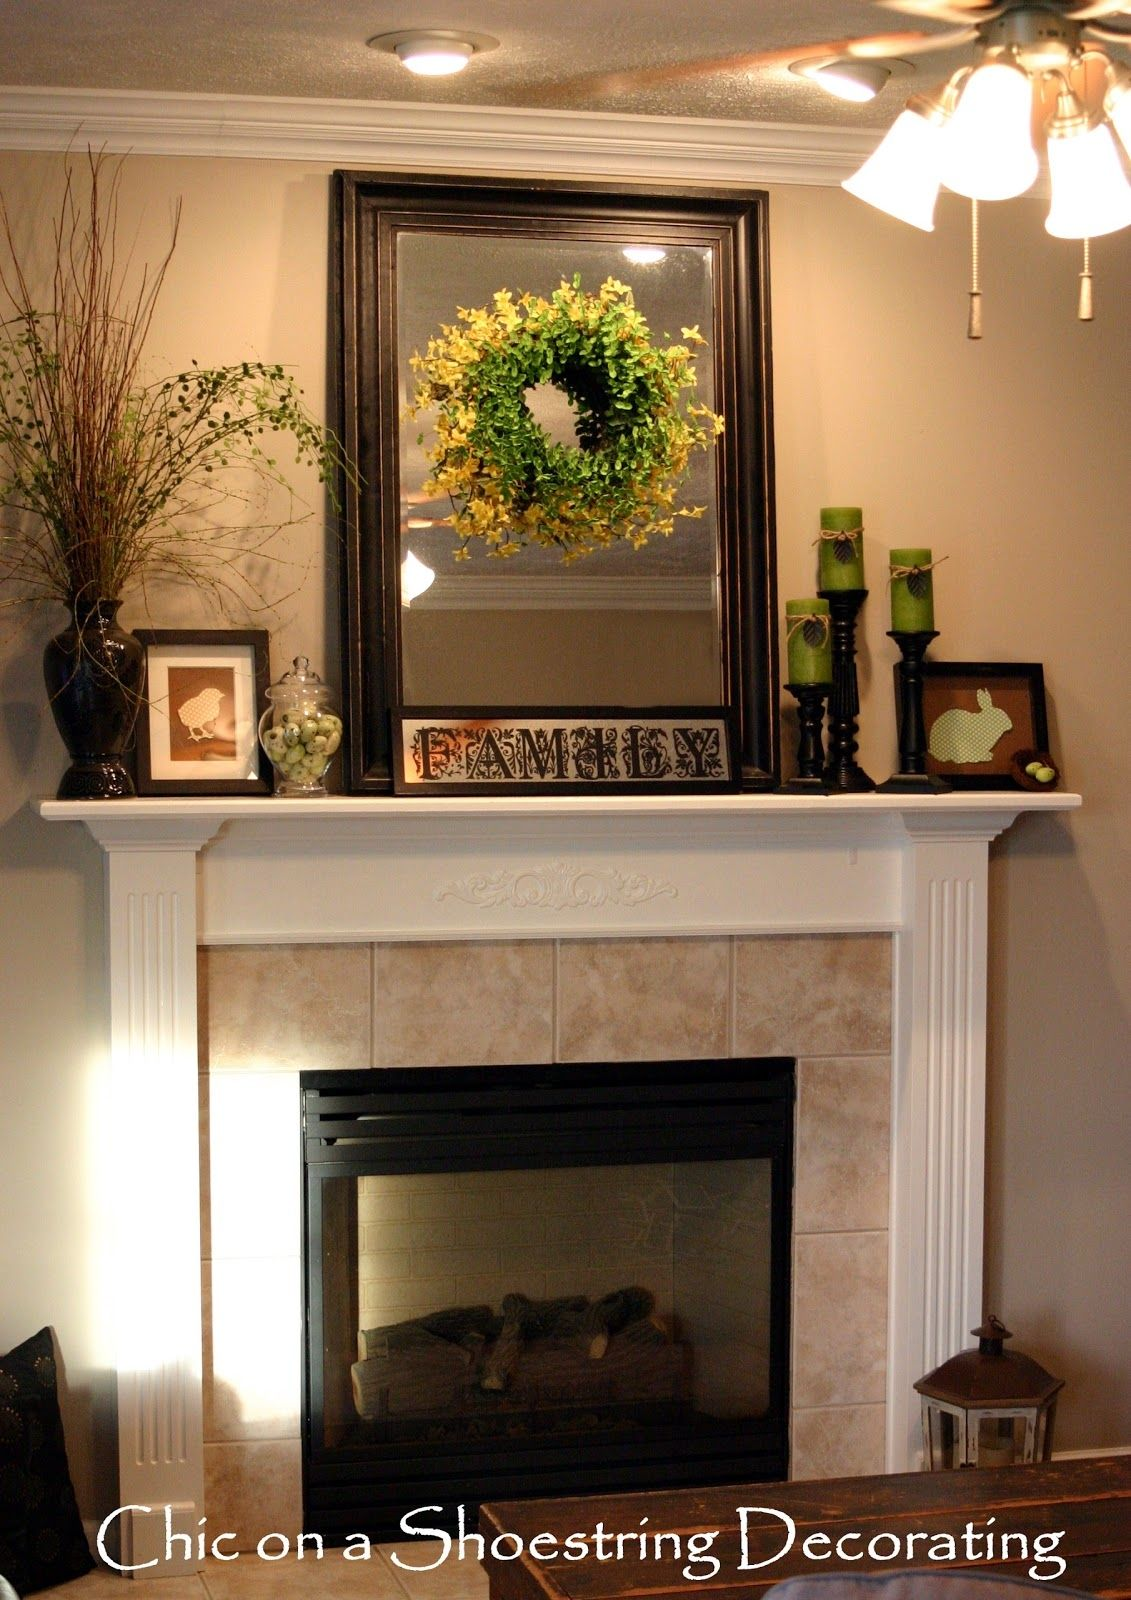 Traditional Fireplace Mantel Ideas Mantel Exciting Mantel Decor Ideas For Fireplace Design Fireplace Mantle Decor Fireplace Mantel Decor Fireplace Decor